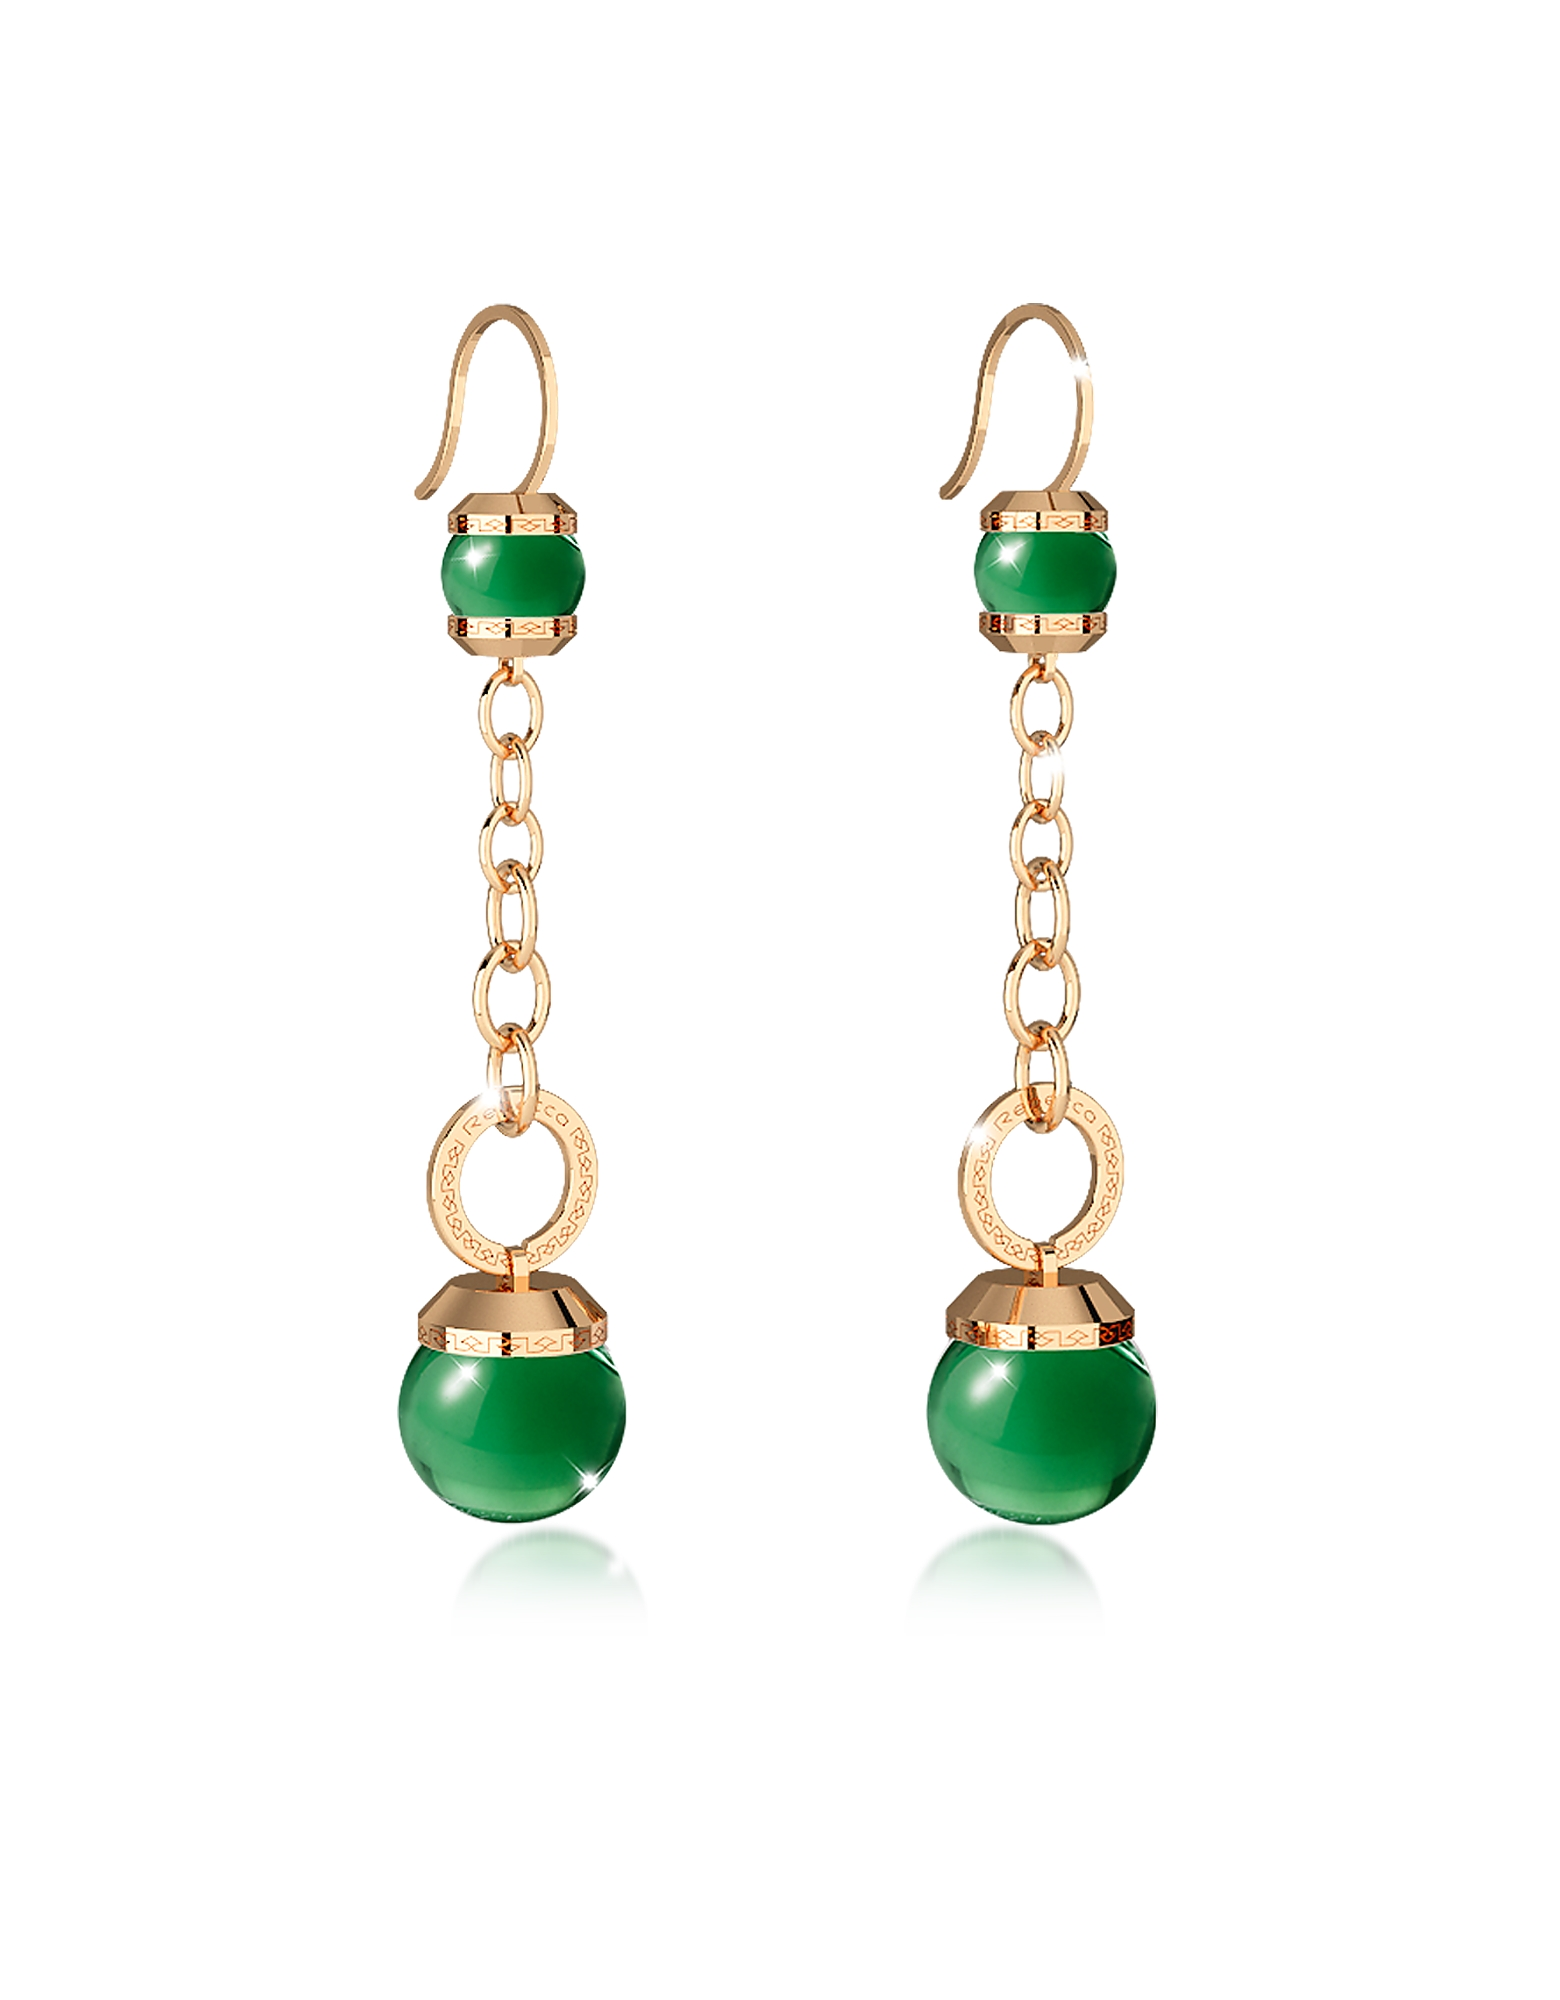 Rebecca Earrings, Hollywood Stone Yellow Gold Over Bronze Dangle Earring w/Green Hydrothermal Stone